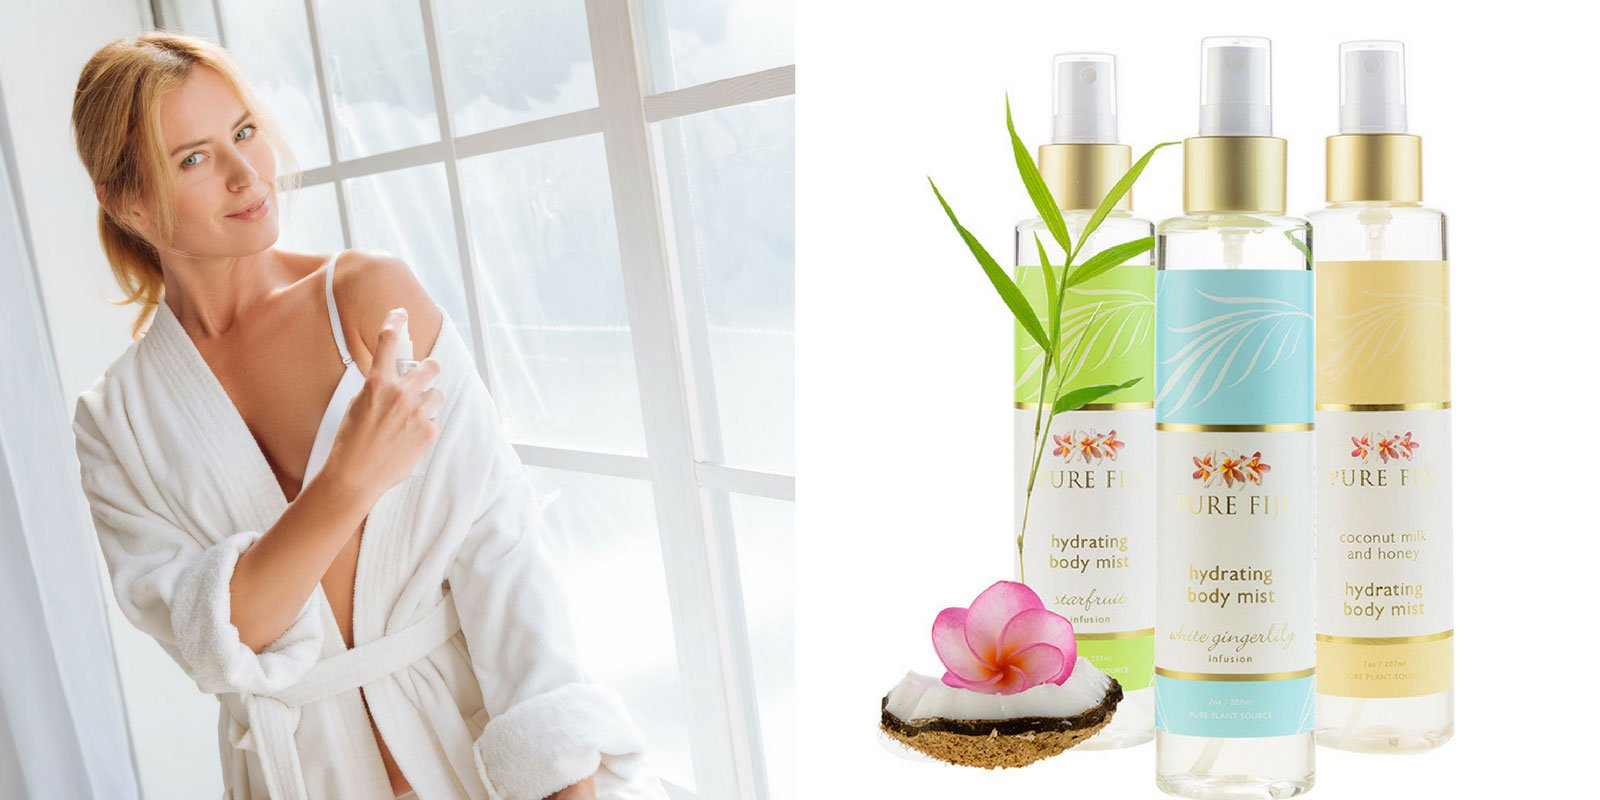 Not Just a Body Spray: 18 Amazing Health & Beauty Benefits of Hydrosols